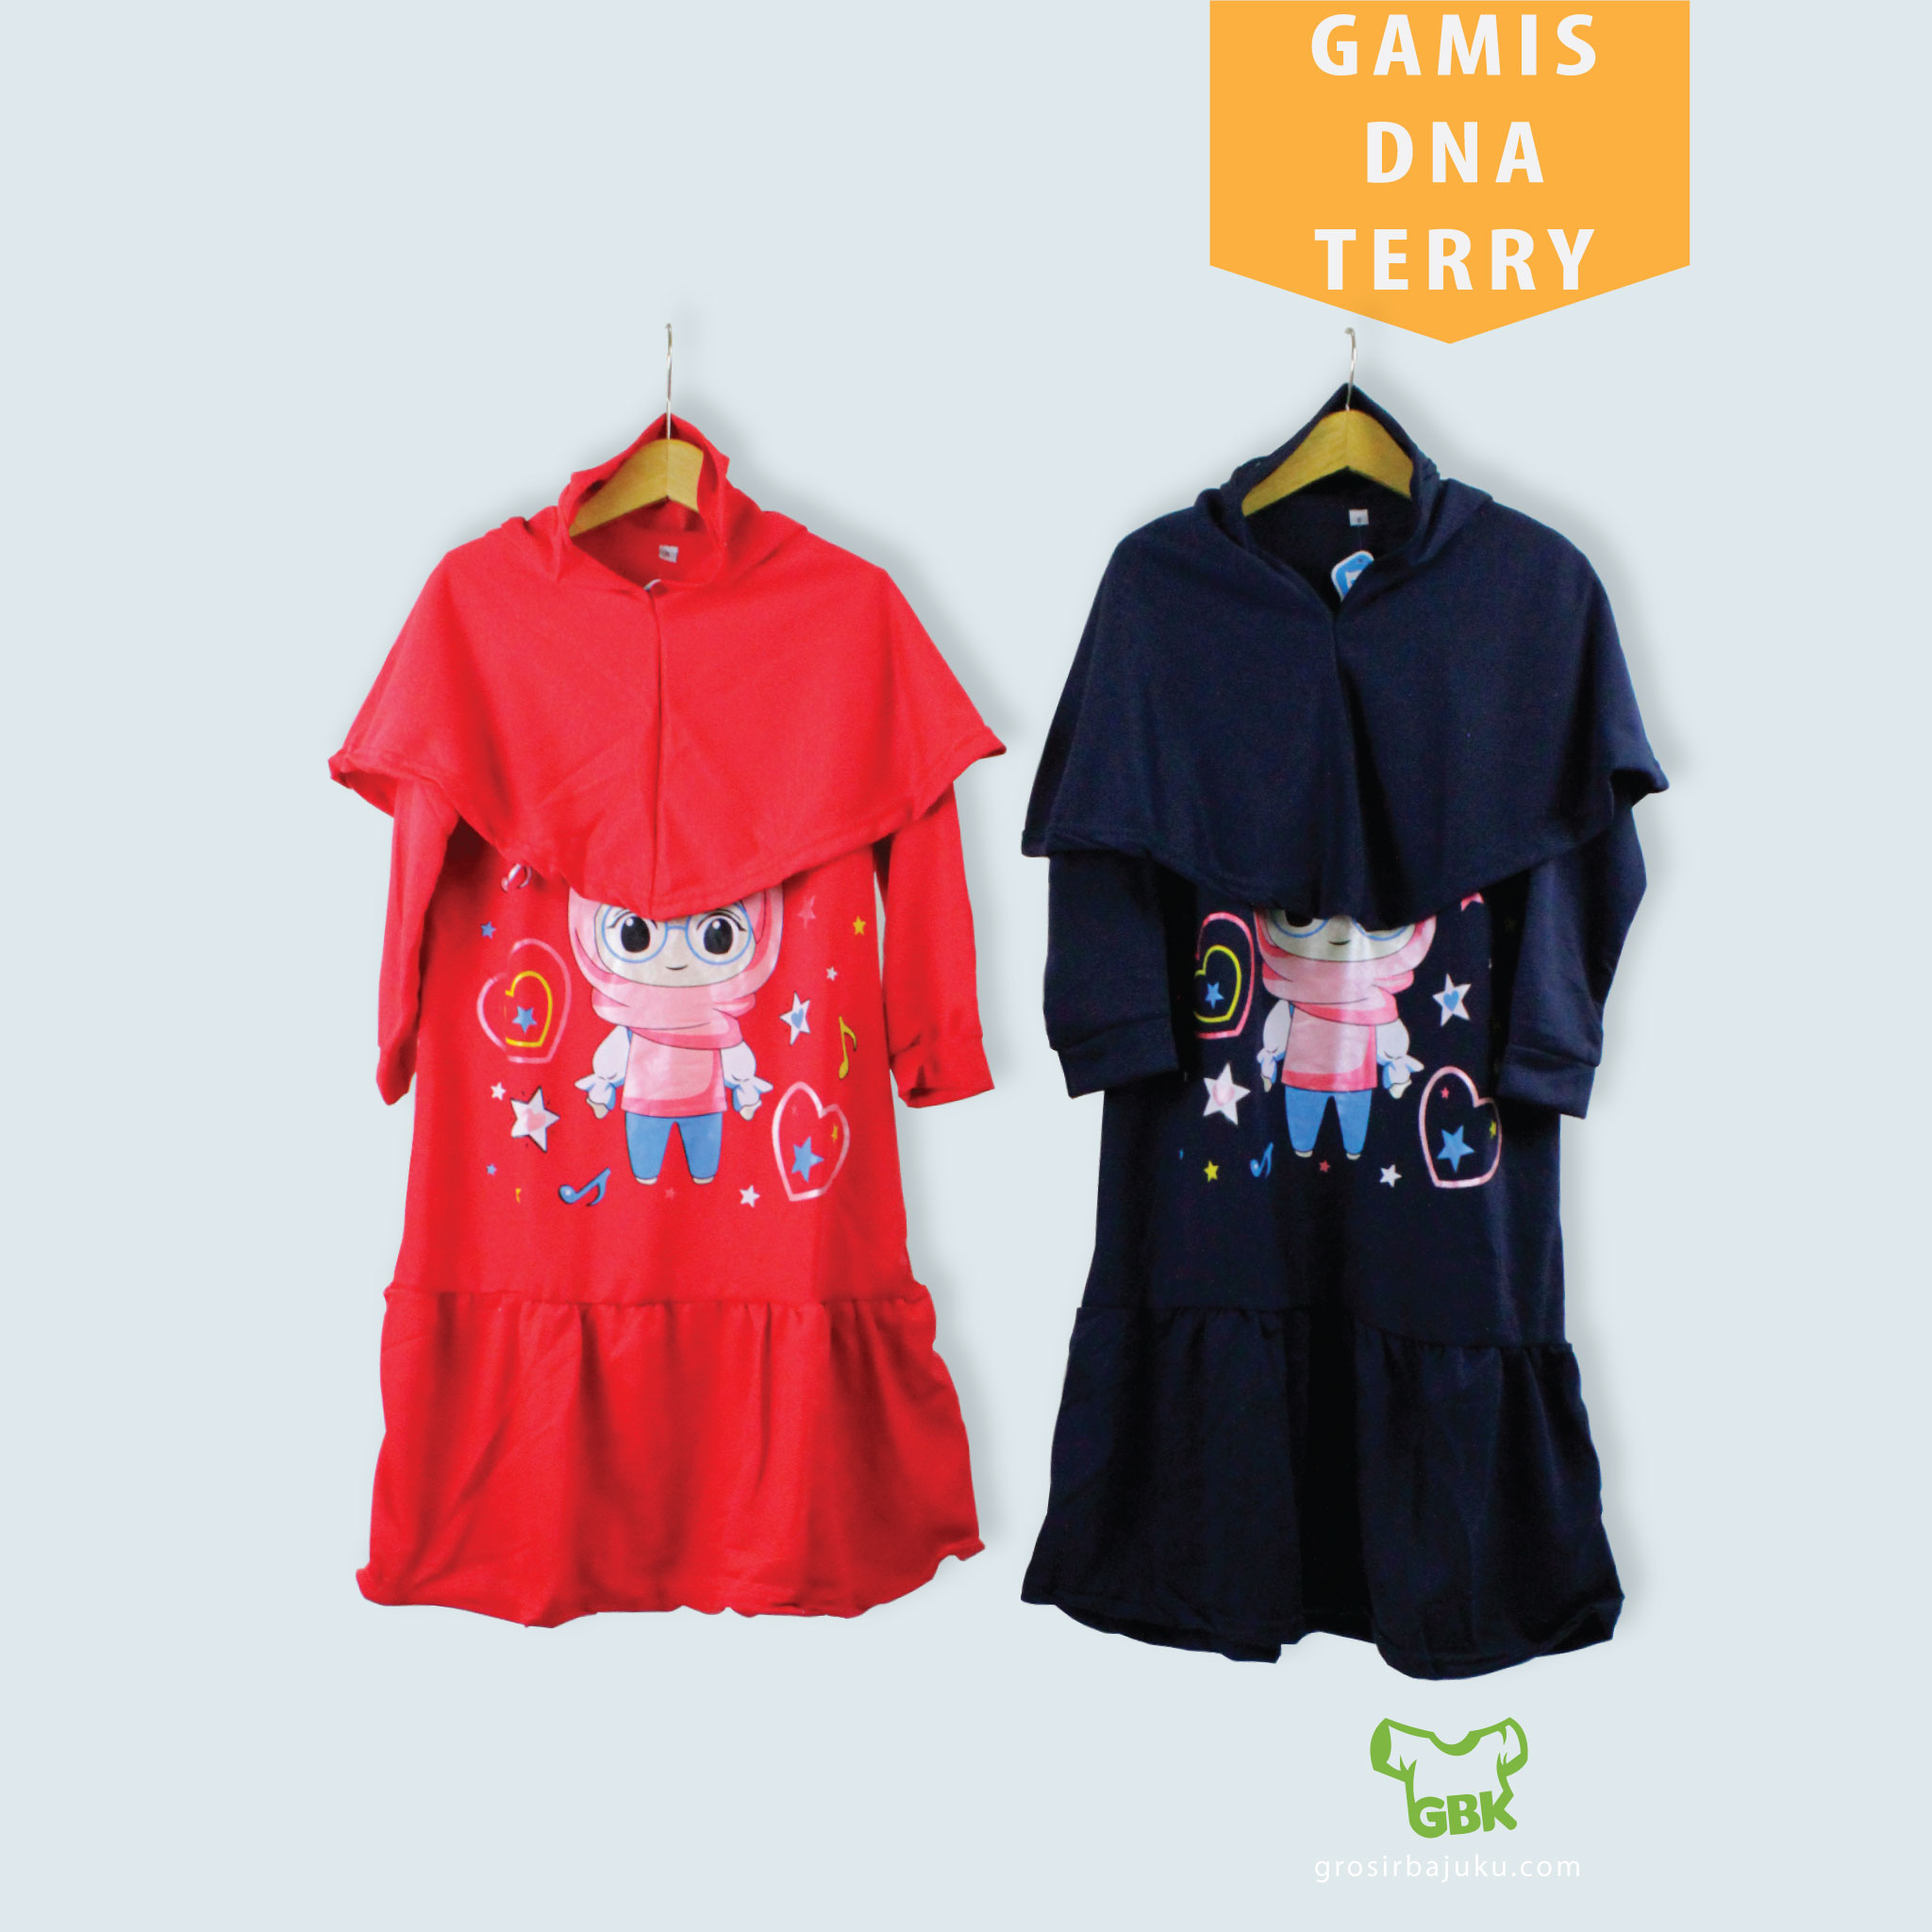 Gamis DNA Terry